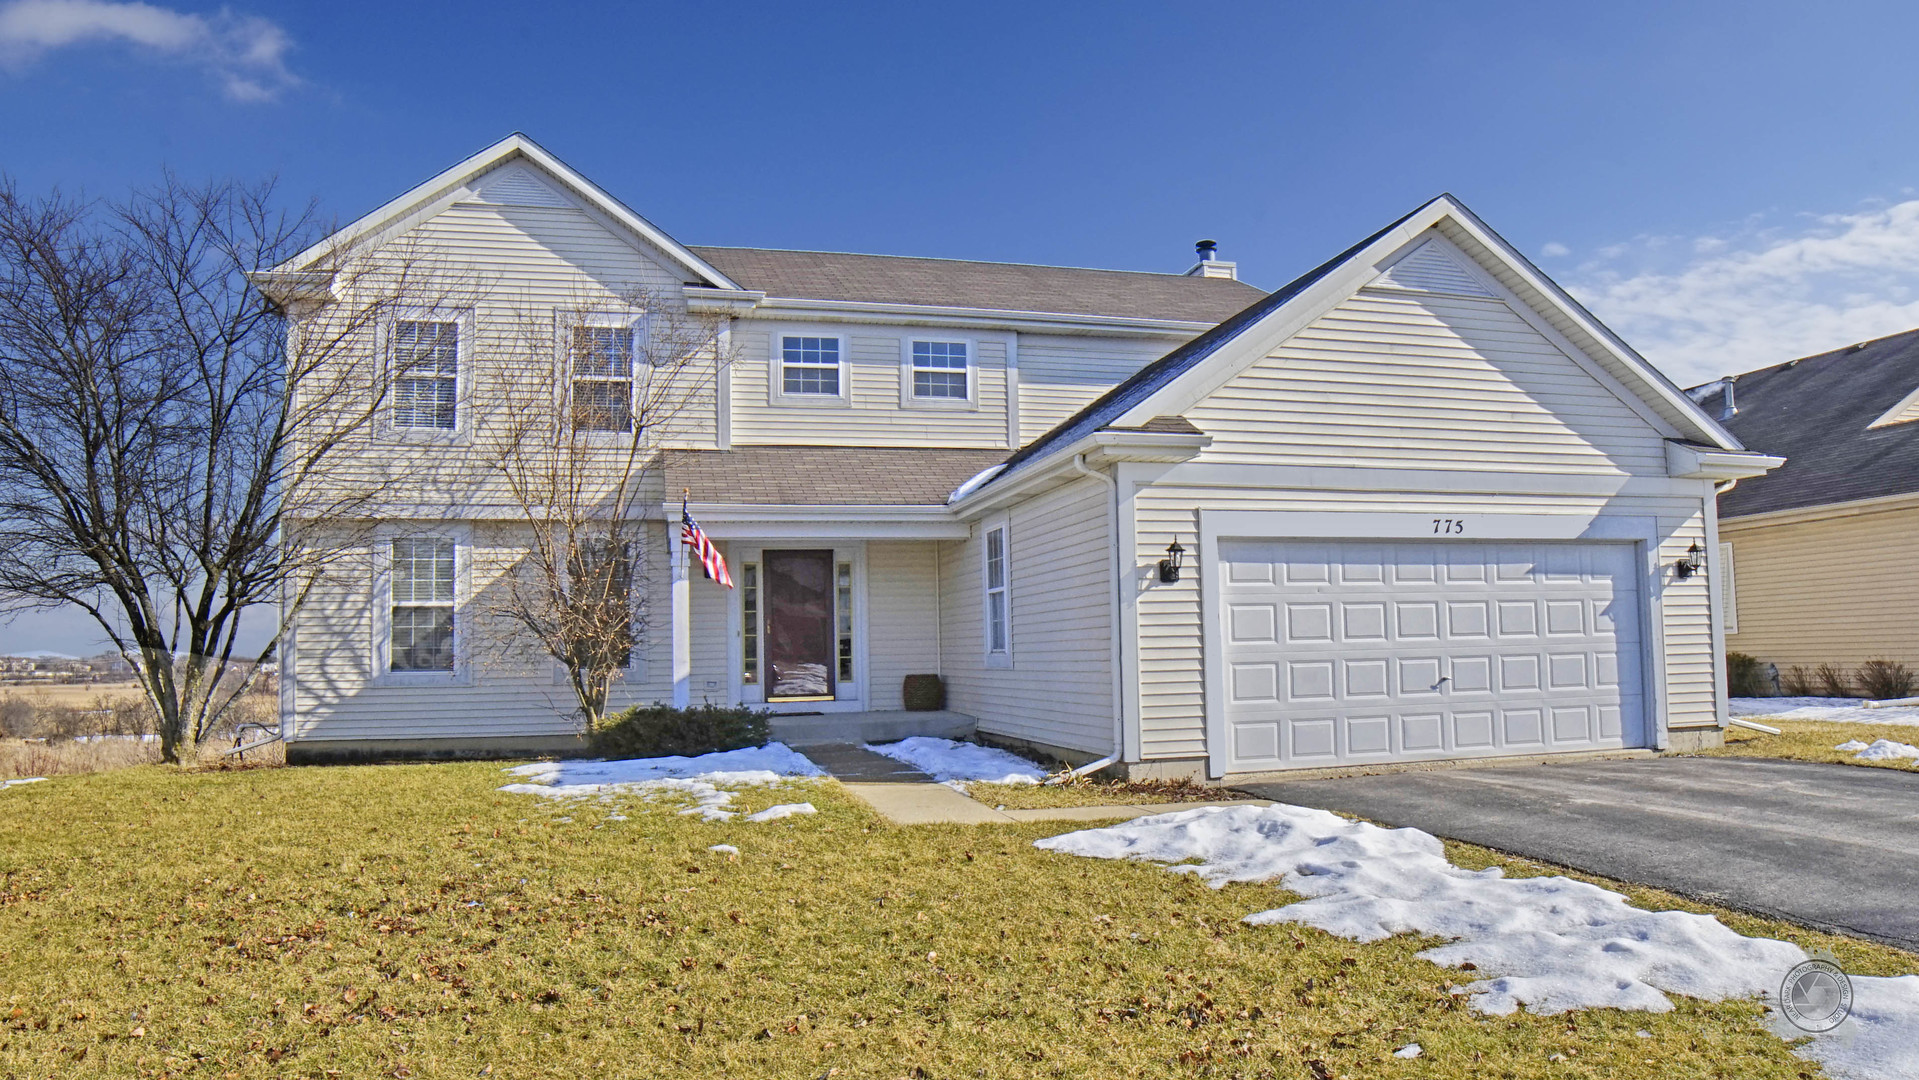 Photo for 775 N Overlook Circle, Round Lake, IL 60073 (MLS # 10640688)